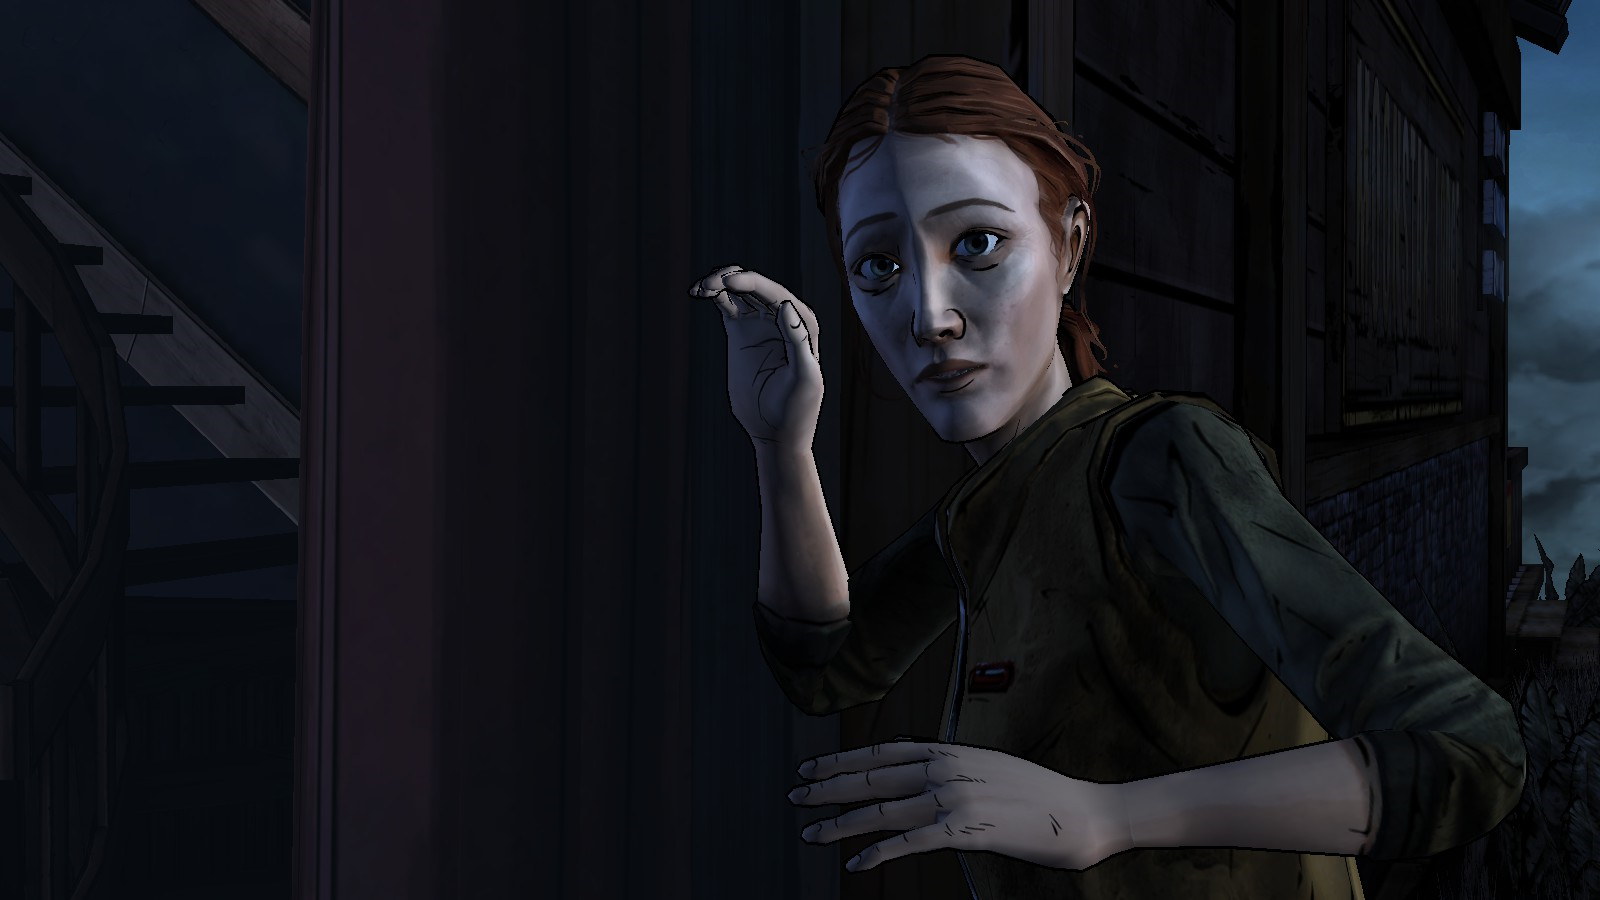 http://img2.wikia.nocookie.net/__cb20140312184745/walkingdead/images/8/81/AHD_Bonnie_Caught.png